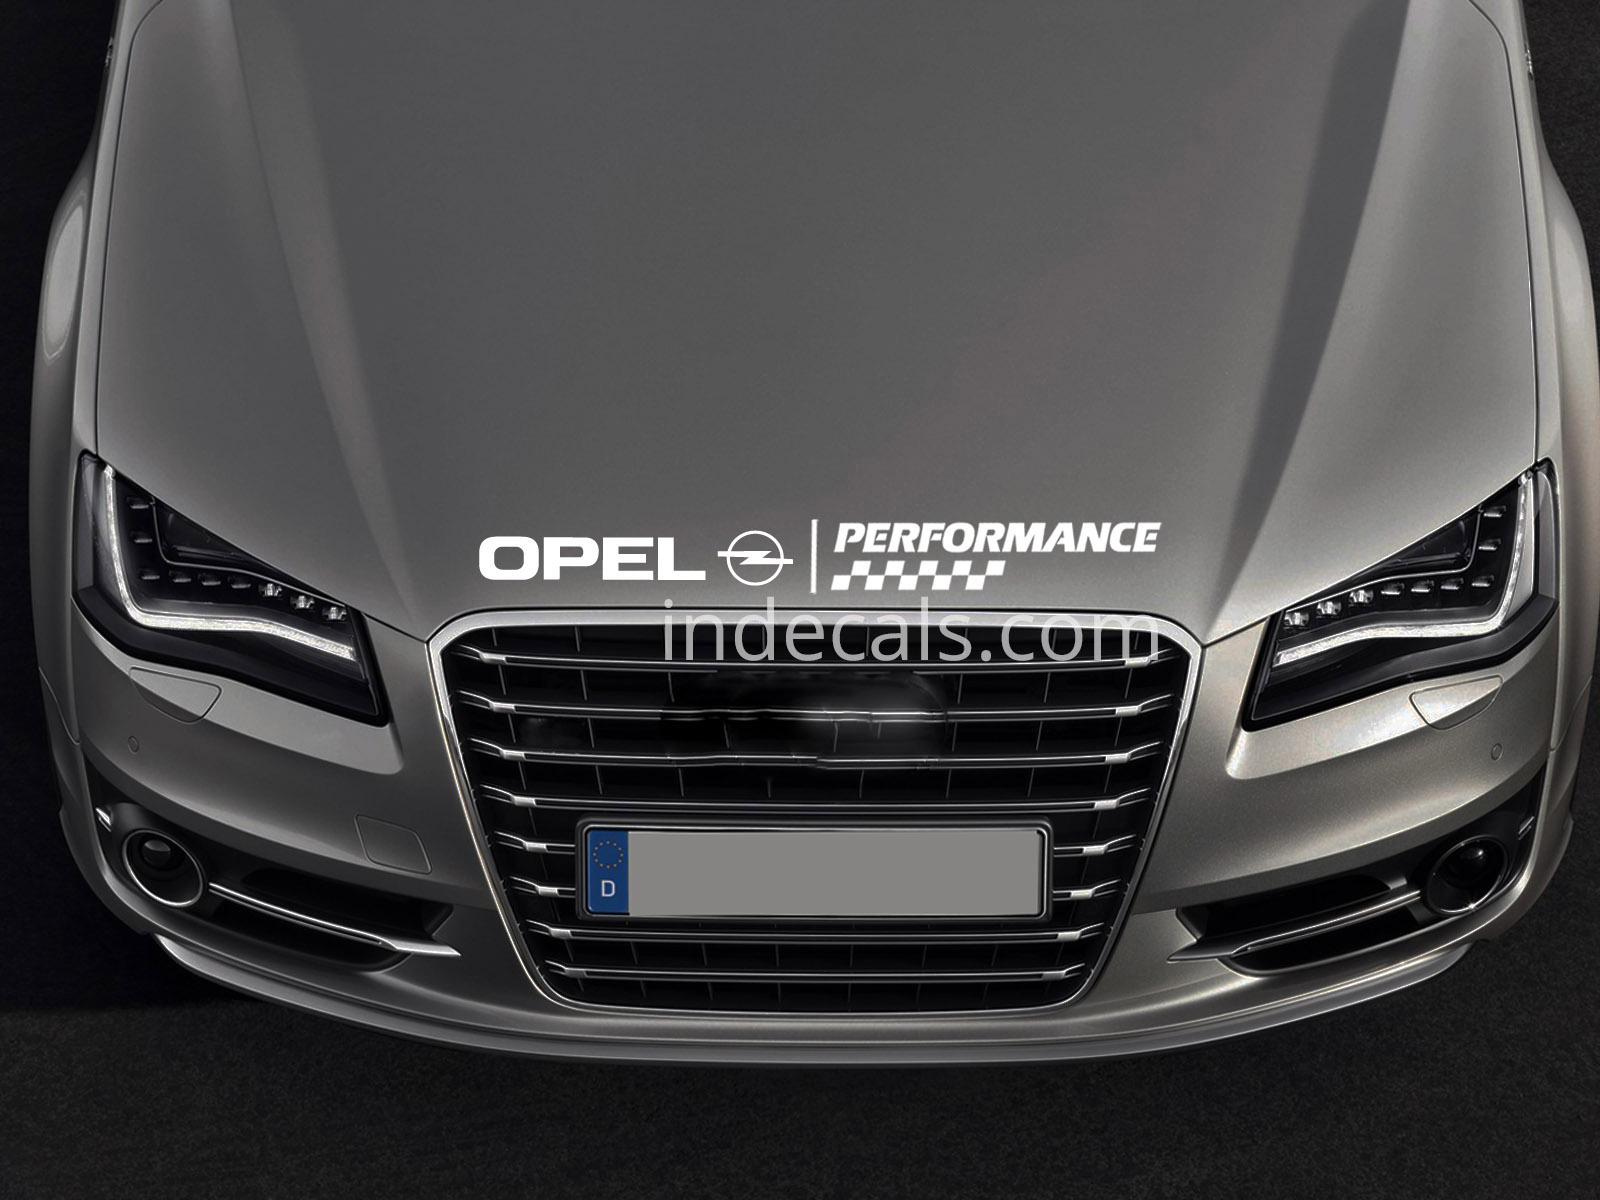 1 x Opel Peformance Sticker for Bonnet - White